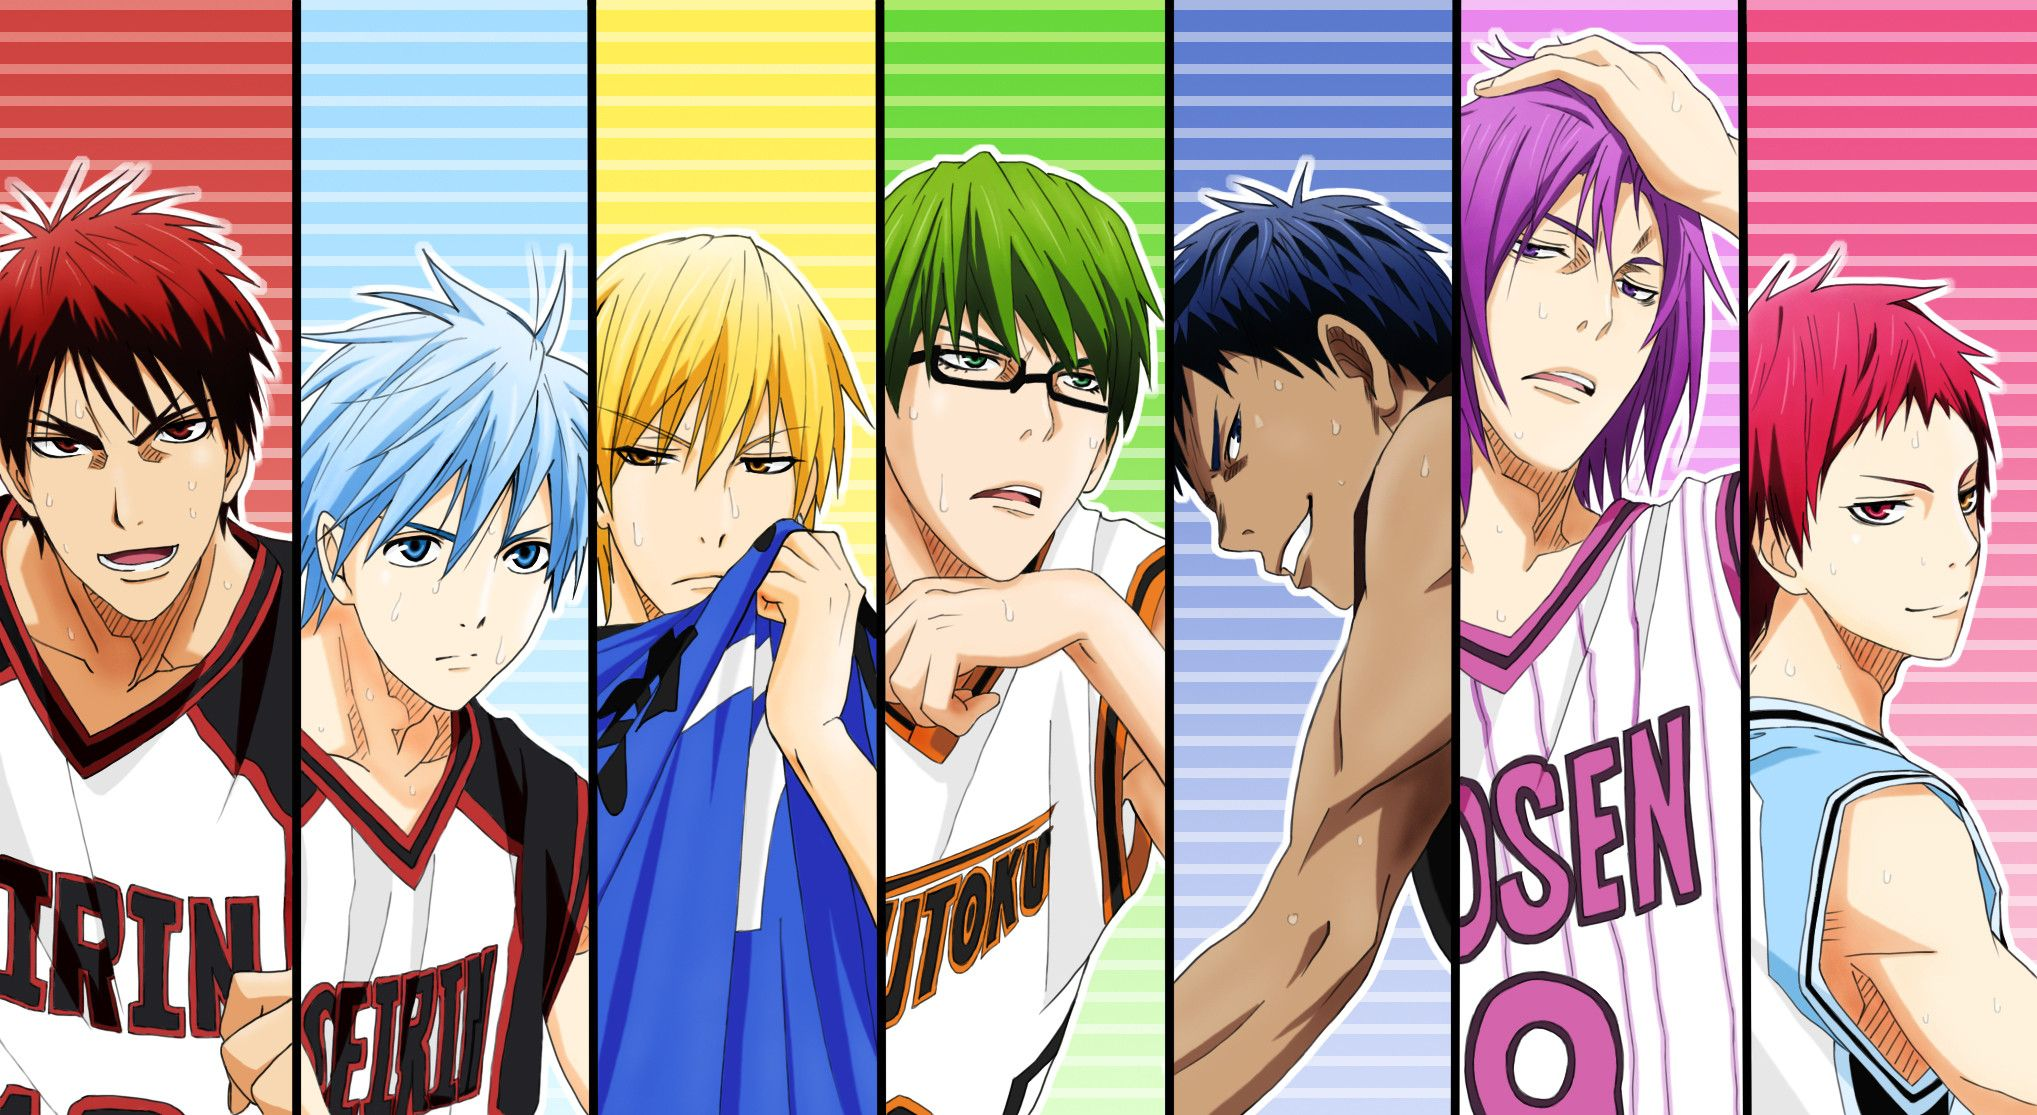 Pin by mimhell123gmail waypicha1234 on knb pinterest kuroko pin by mimhell123gmail waypicha1234 on knb pinterest kuroko and anime voltagebd Choice Image